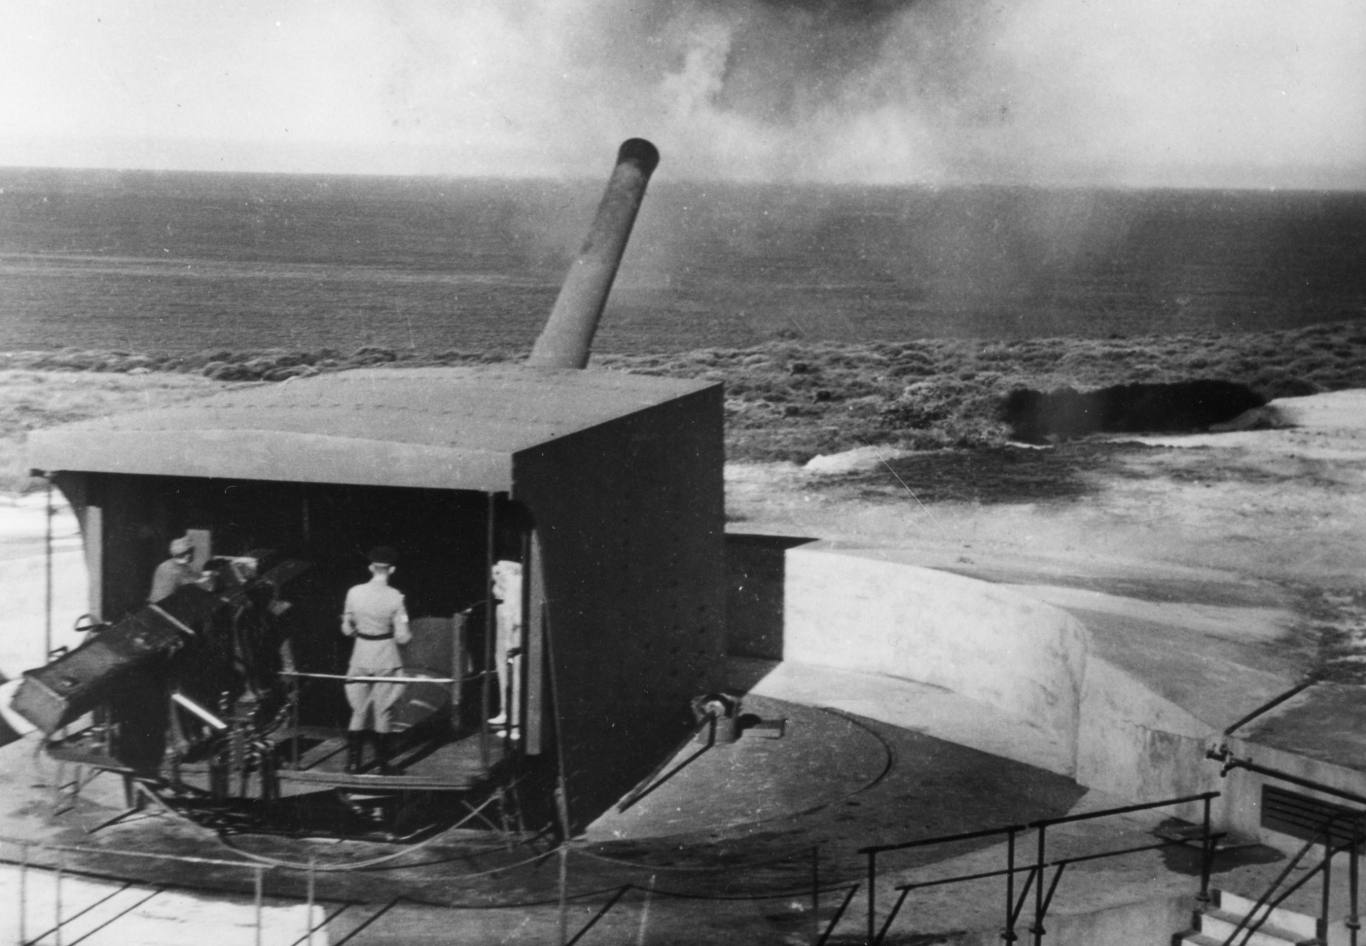 Black and white image showing a large gun emplacement with a gun firing.